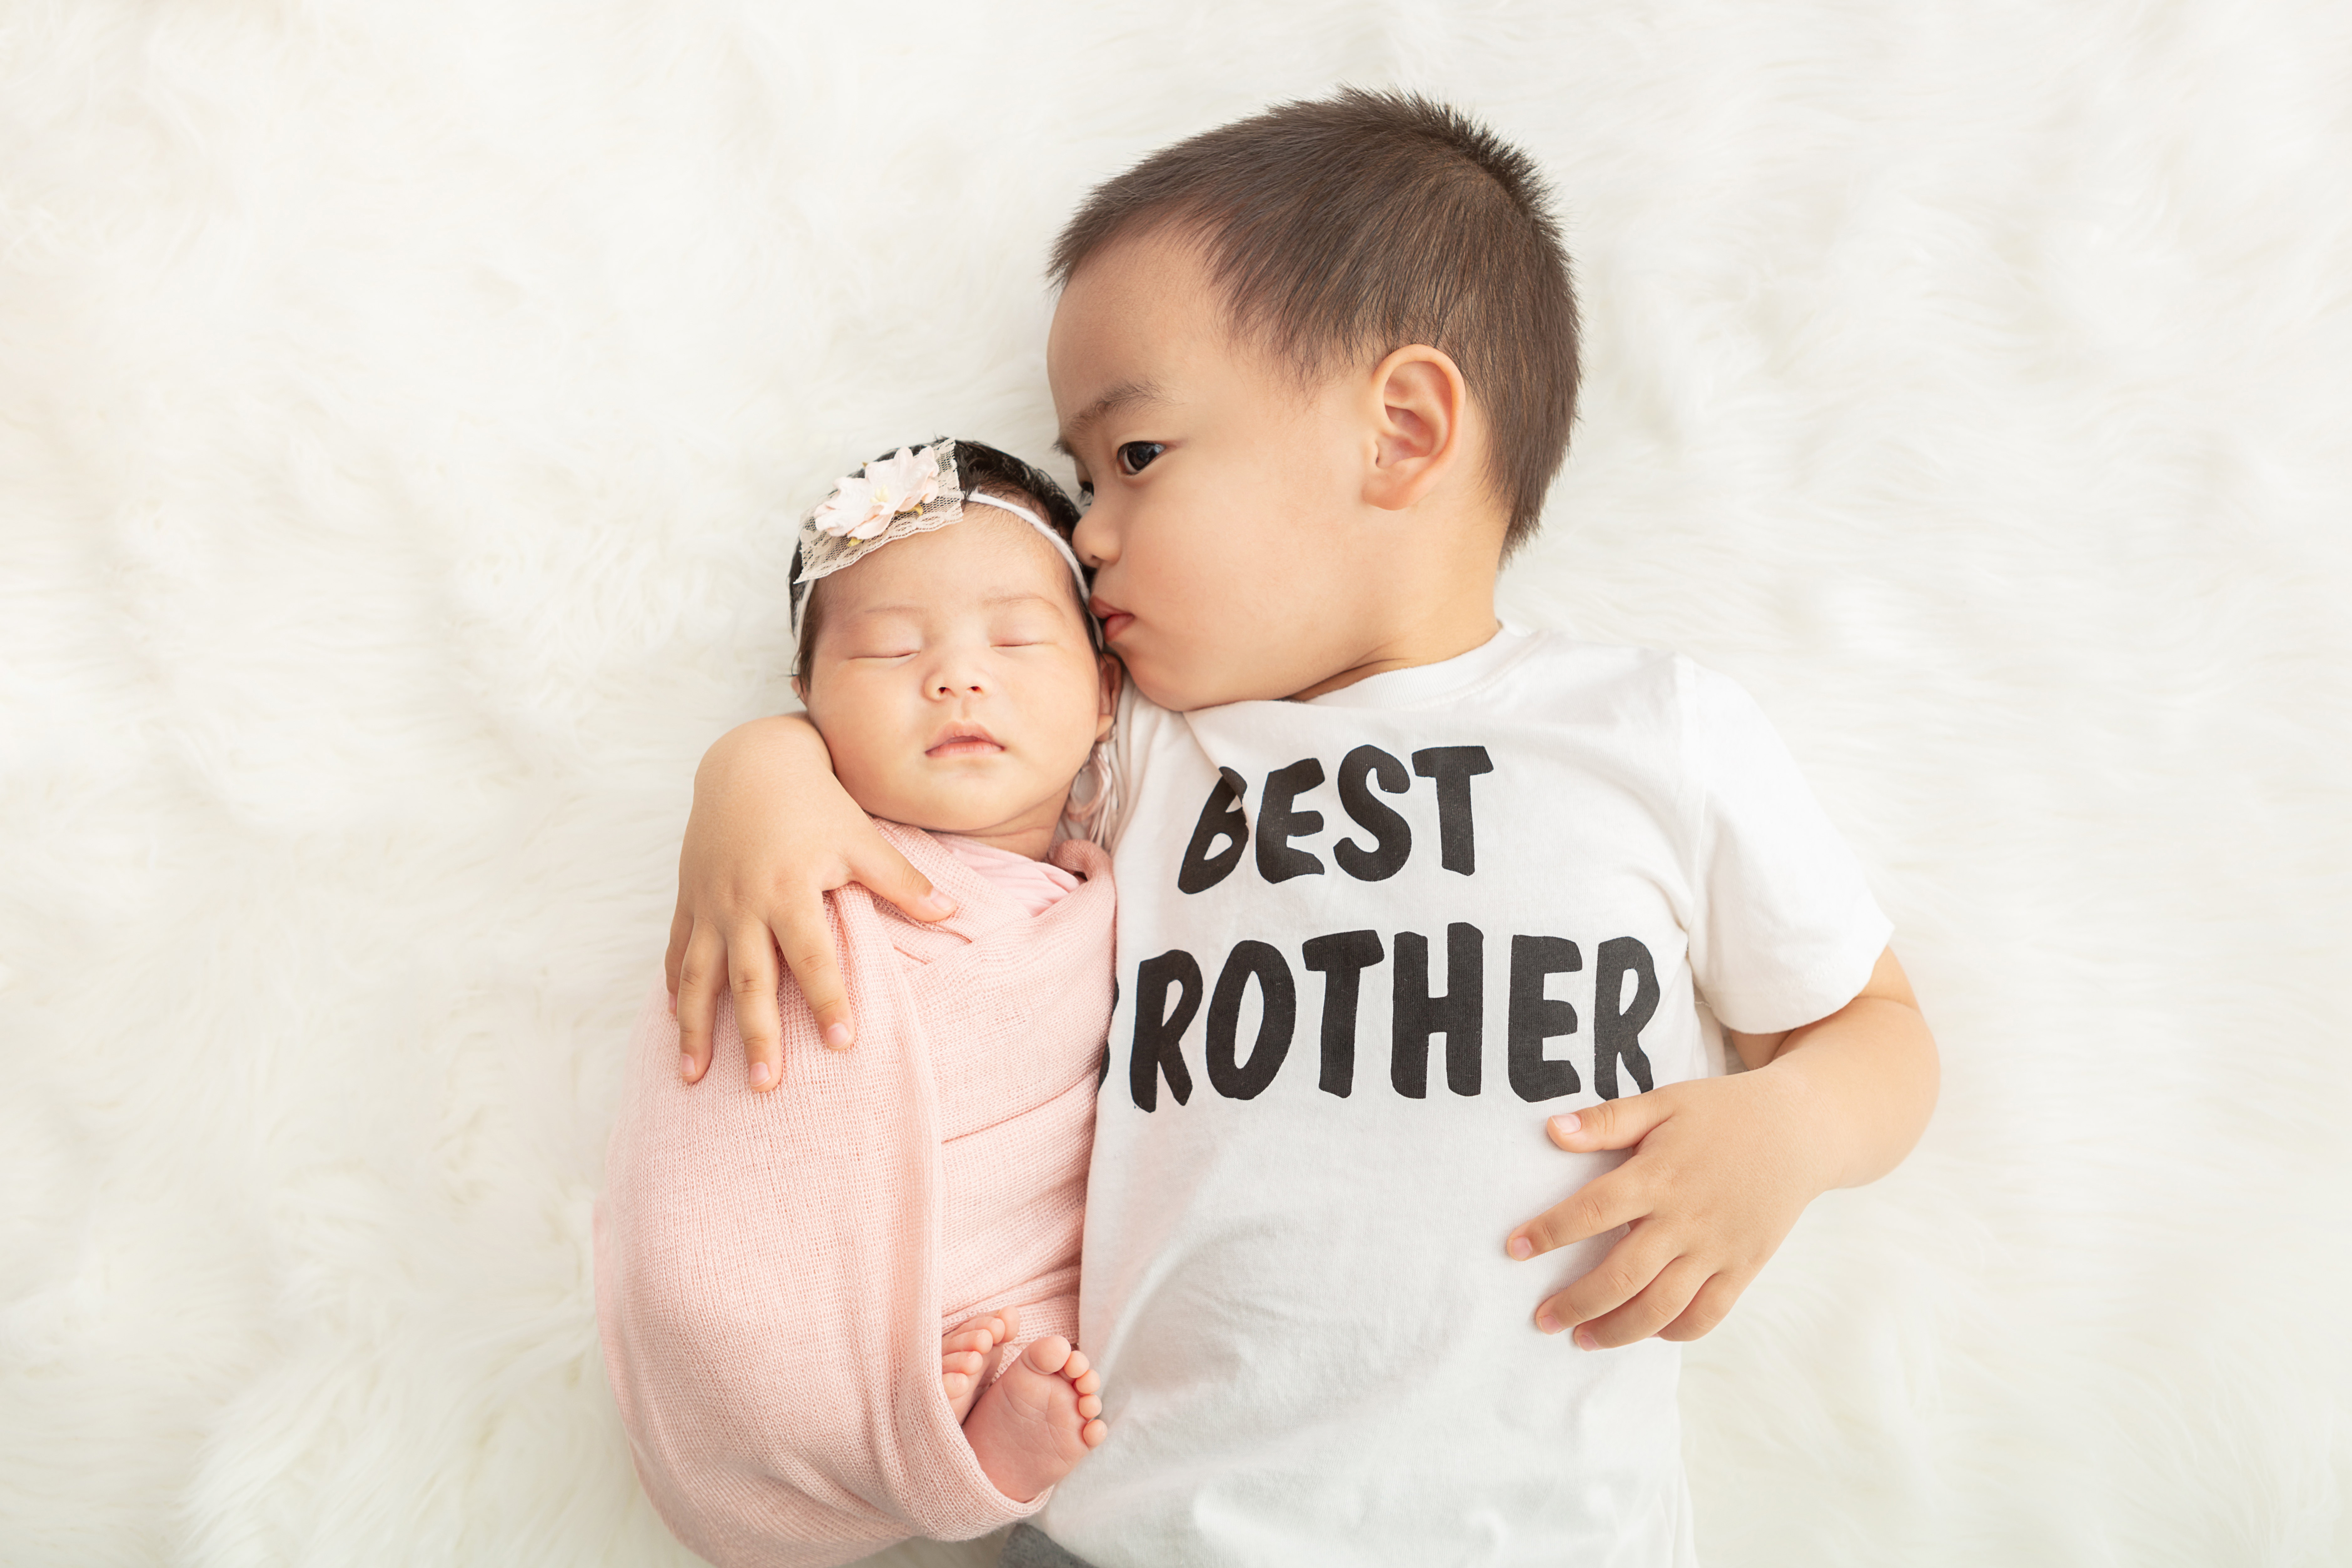 toddler boy wearing a best brother t-shirt and snuggling his newborn baby sister who is wrapped in a peachy pink swaddle